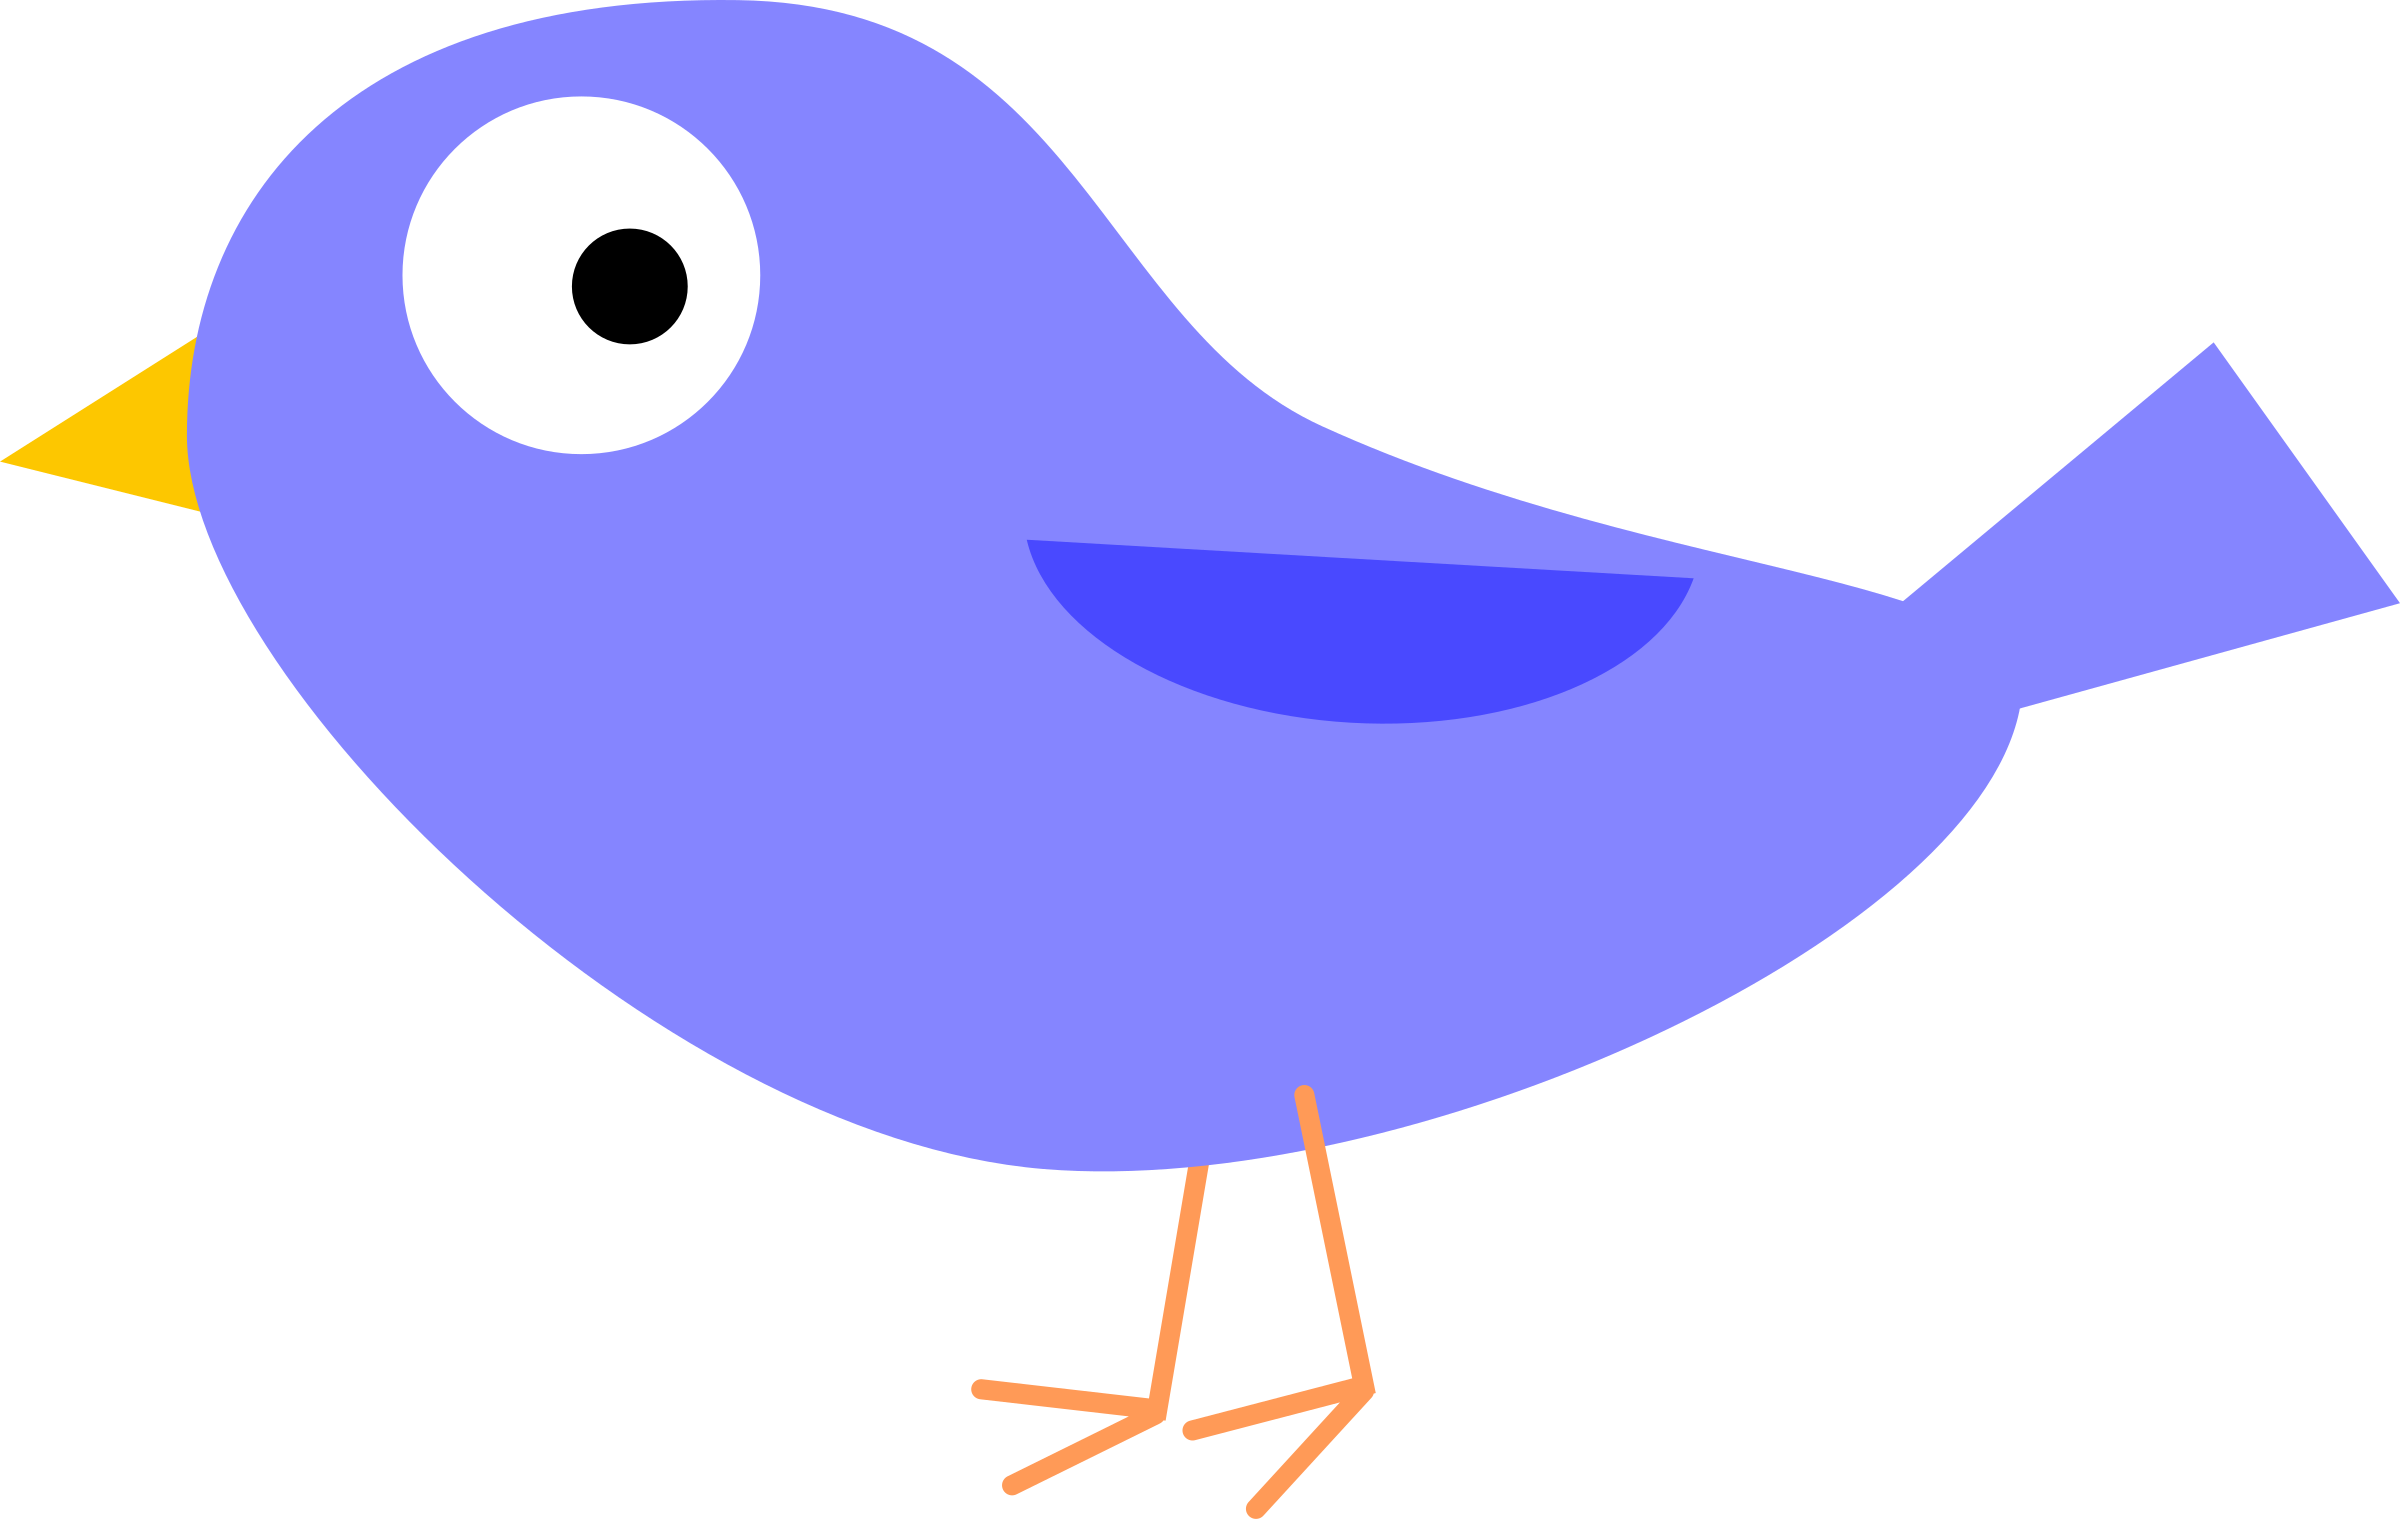 vector free download Big image png. Logs clipart bird.